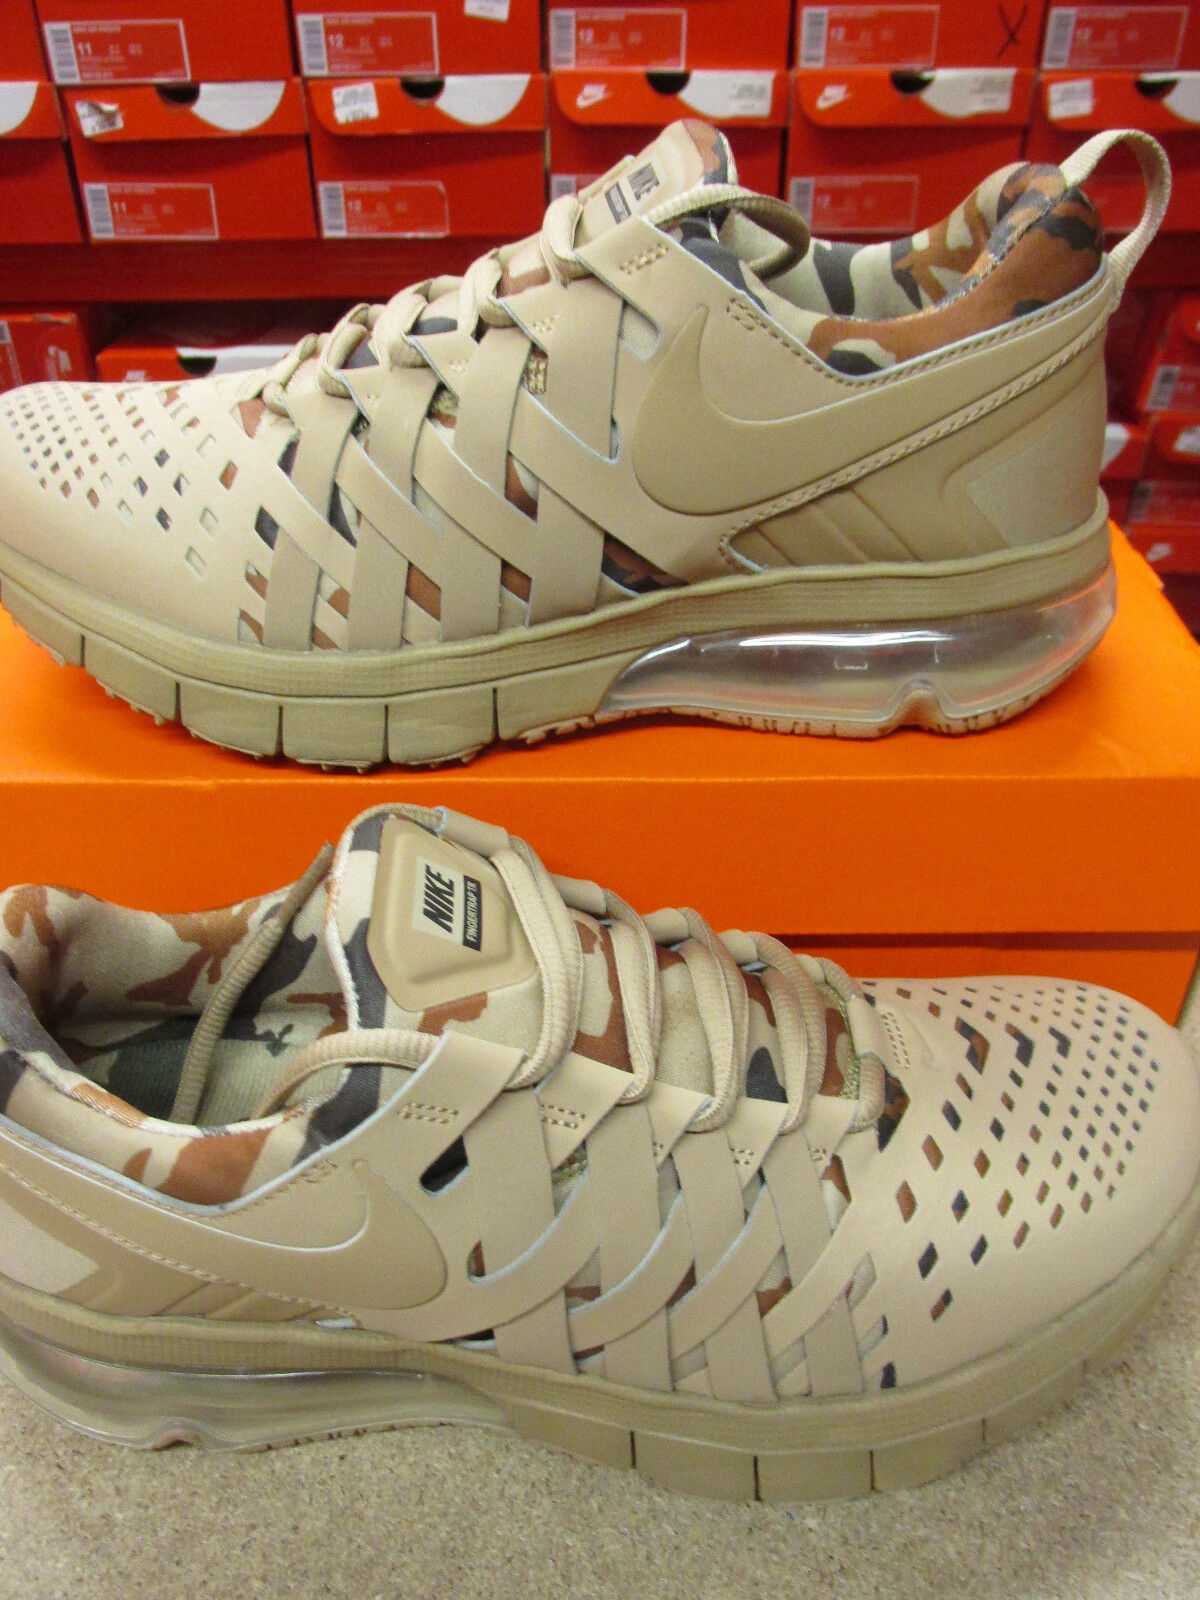 Nike Fingertrap Max AMP Sneakers Hombre Running Trainers 644672 201 Sneakers AMP Zapatos da1070